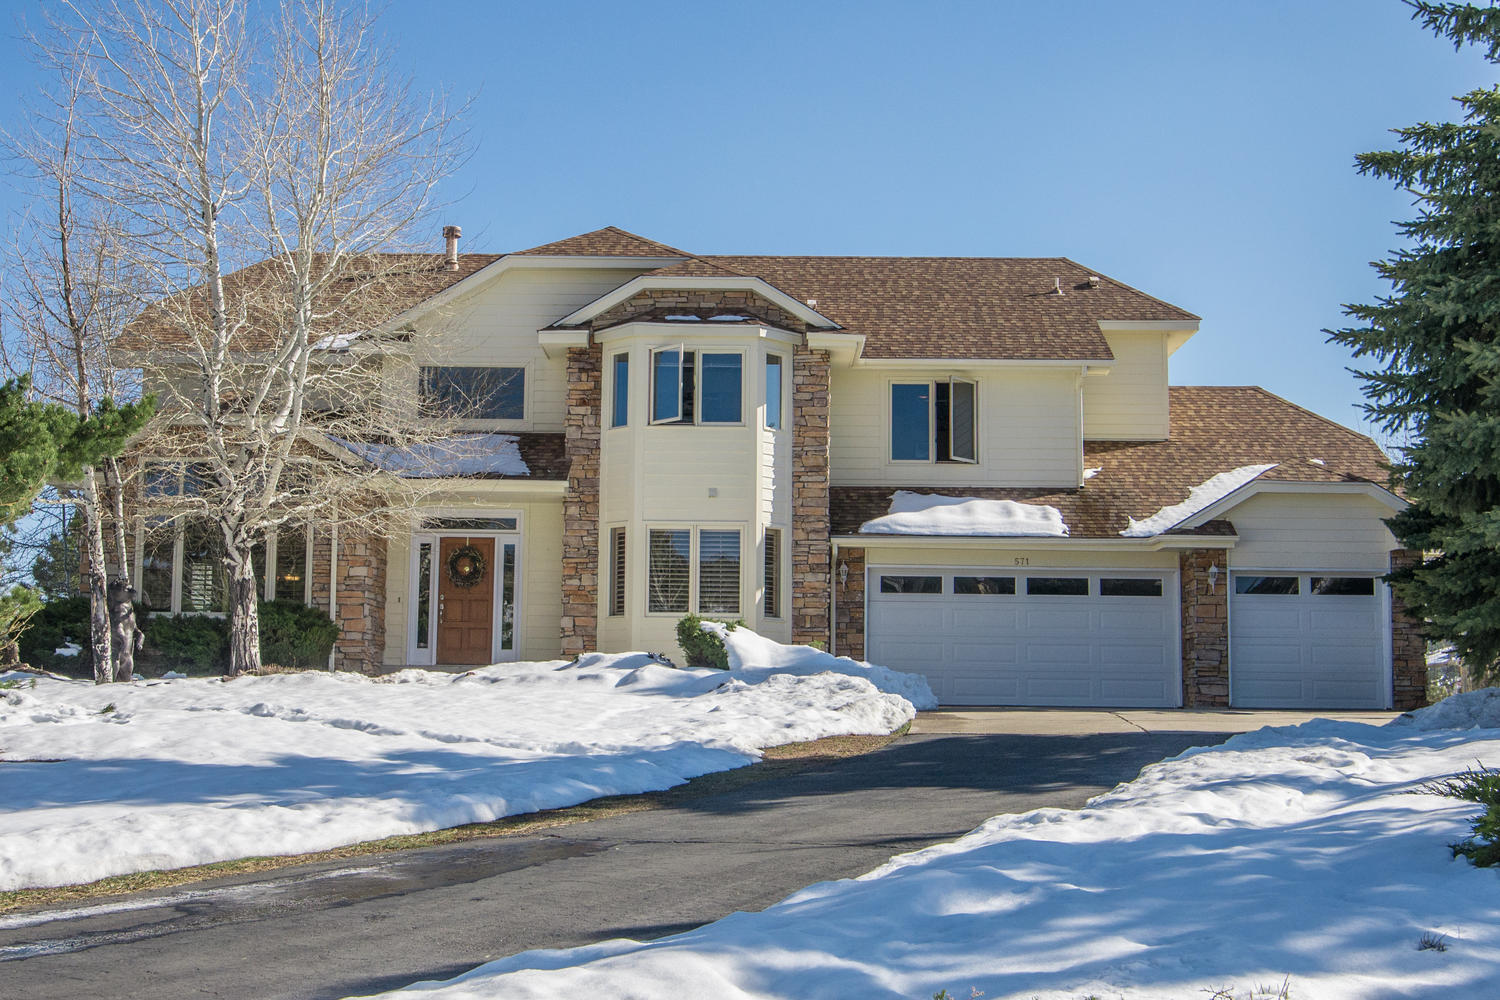 Single Family Home for Sale at Nestled in Rocky Hills, Evergreens and Aspens 571 Sunrise Drive Golden, Colorado, 80401 United States